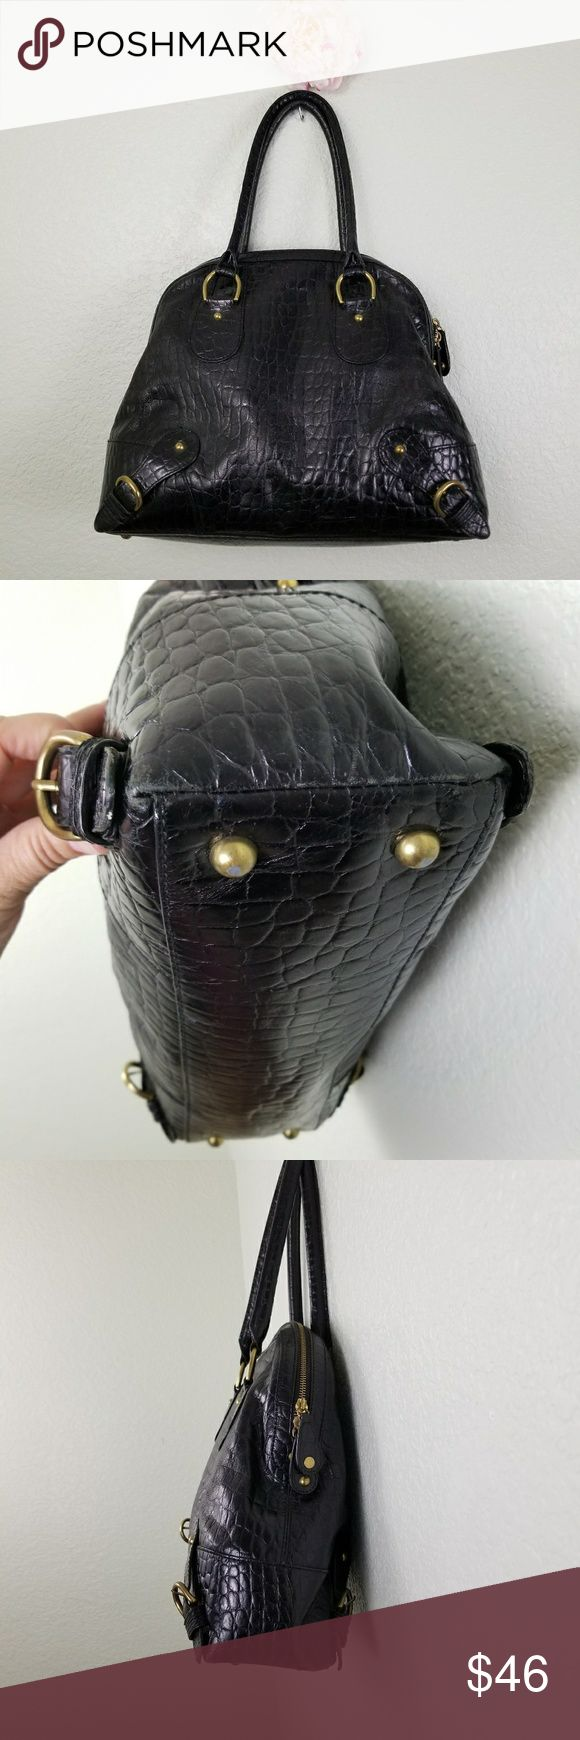 Banana Republic Croc embossed satchel handbag Banana Republic Croc embossed satchel leather handbag. Please note some wear to corners as shown in photos.   Measurements to come. Need them now? Ask :) Banana Republic Bags Satchels